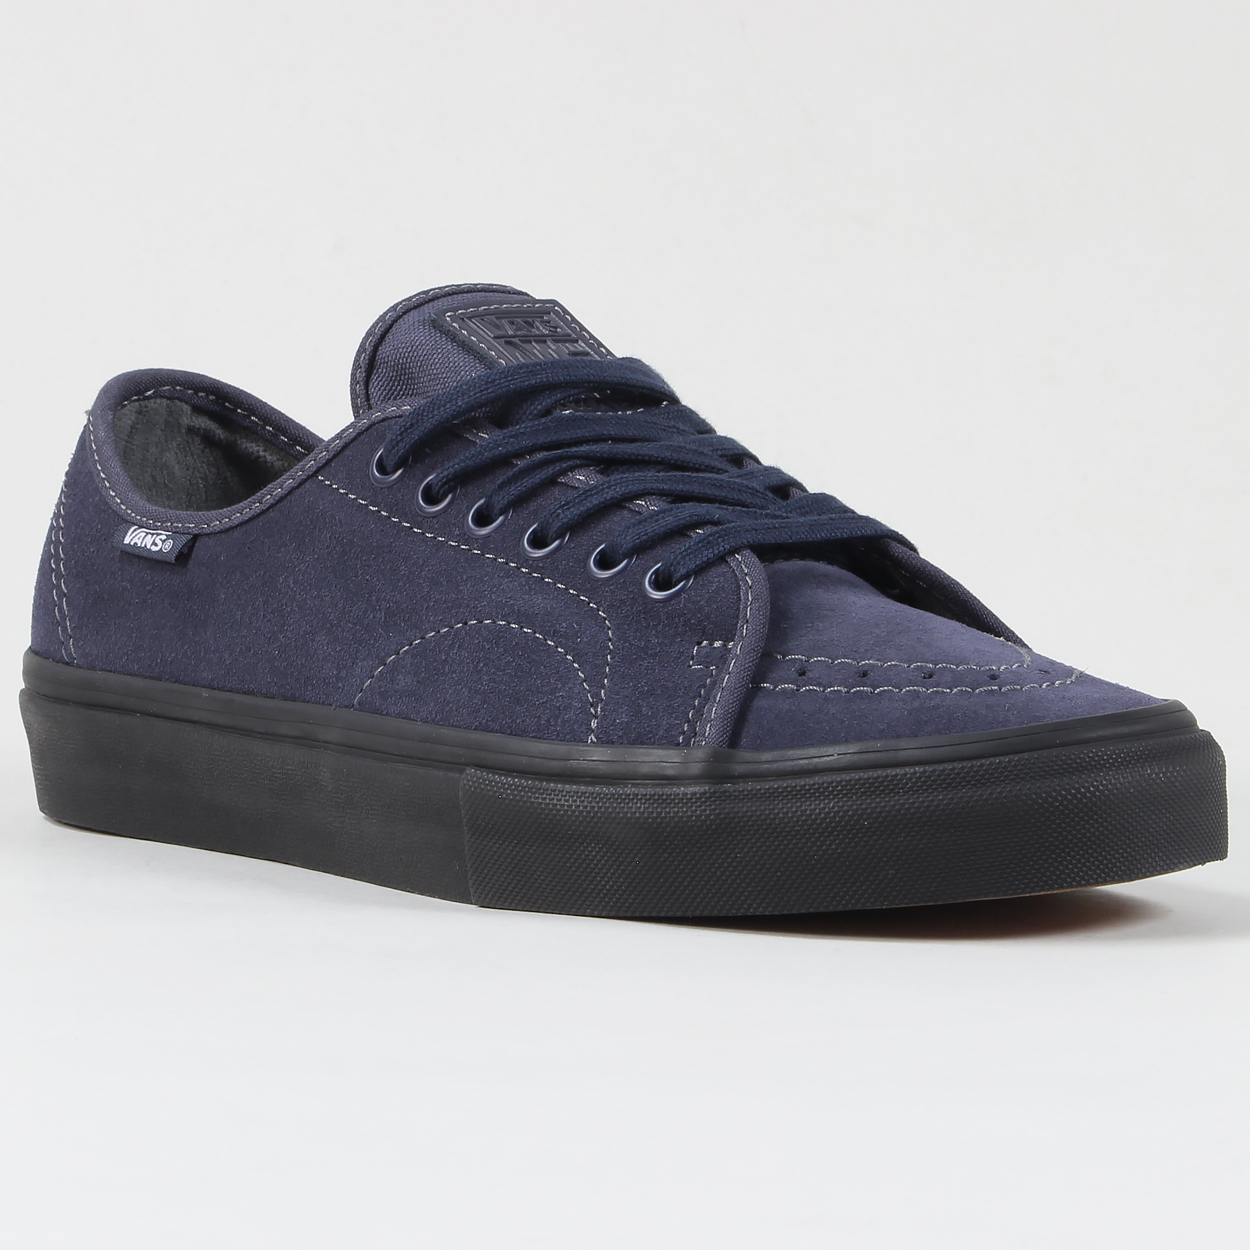 7dba114f97 Part of Vans Core Skate range the AV classic shoes are the signature shoe  of Anthony Van Engelen and built to skate! In a timeless low cut.